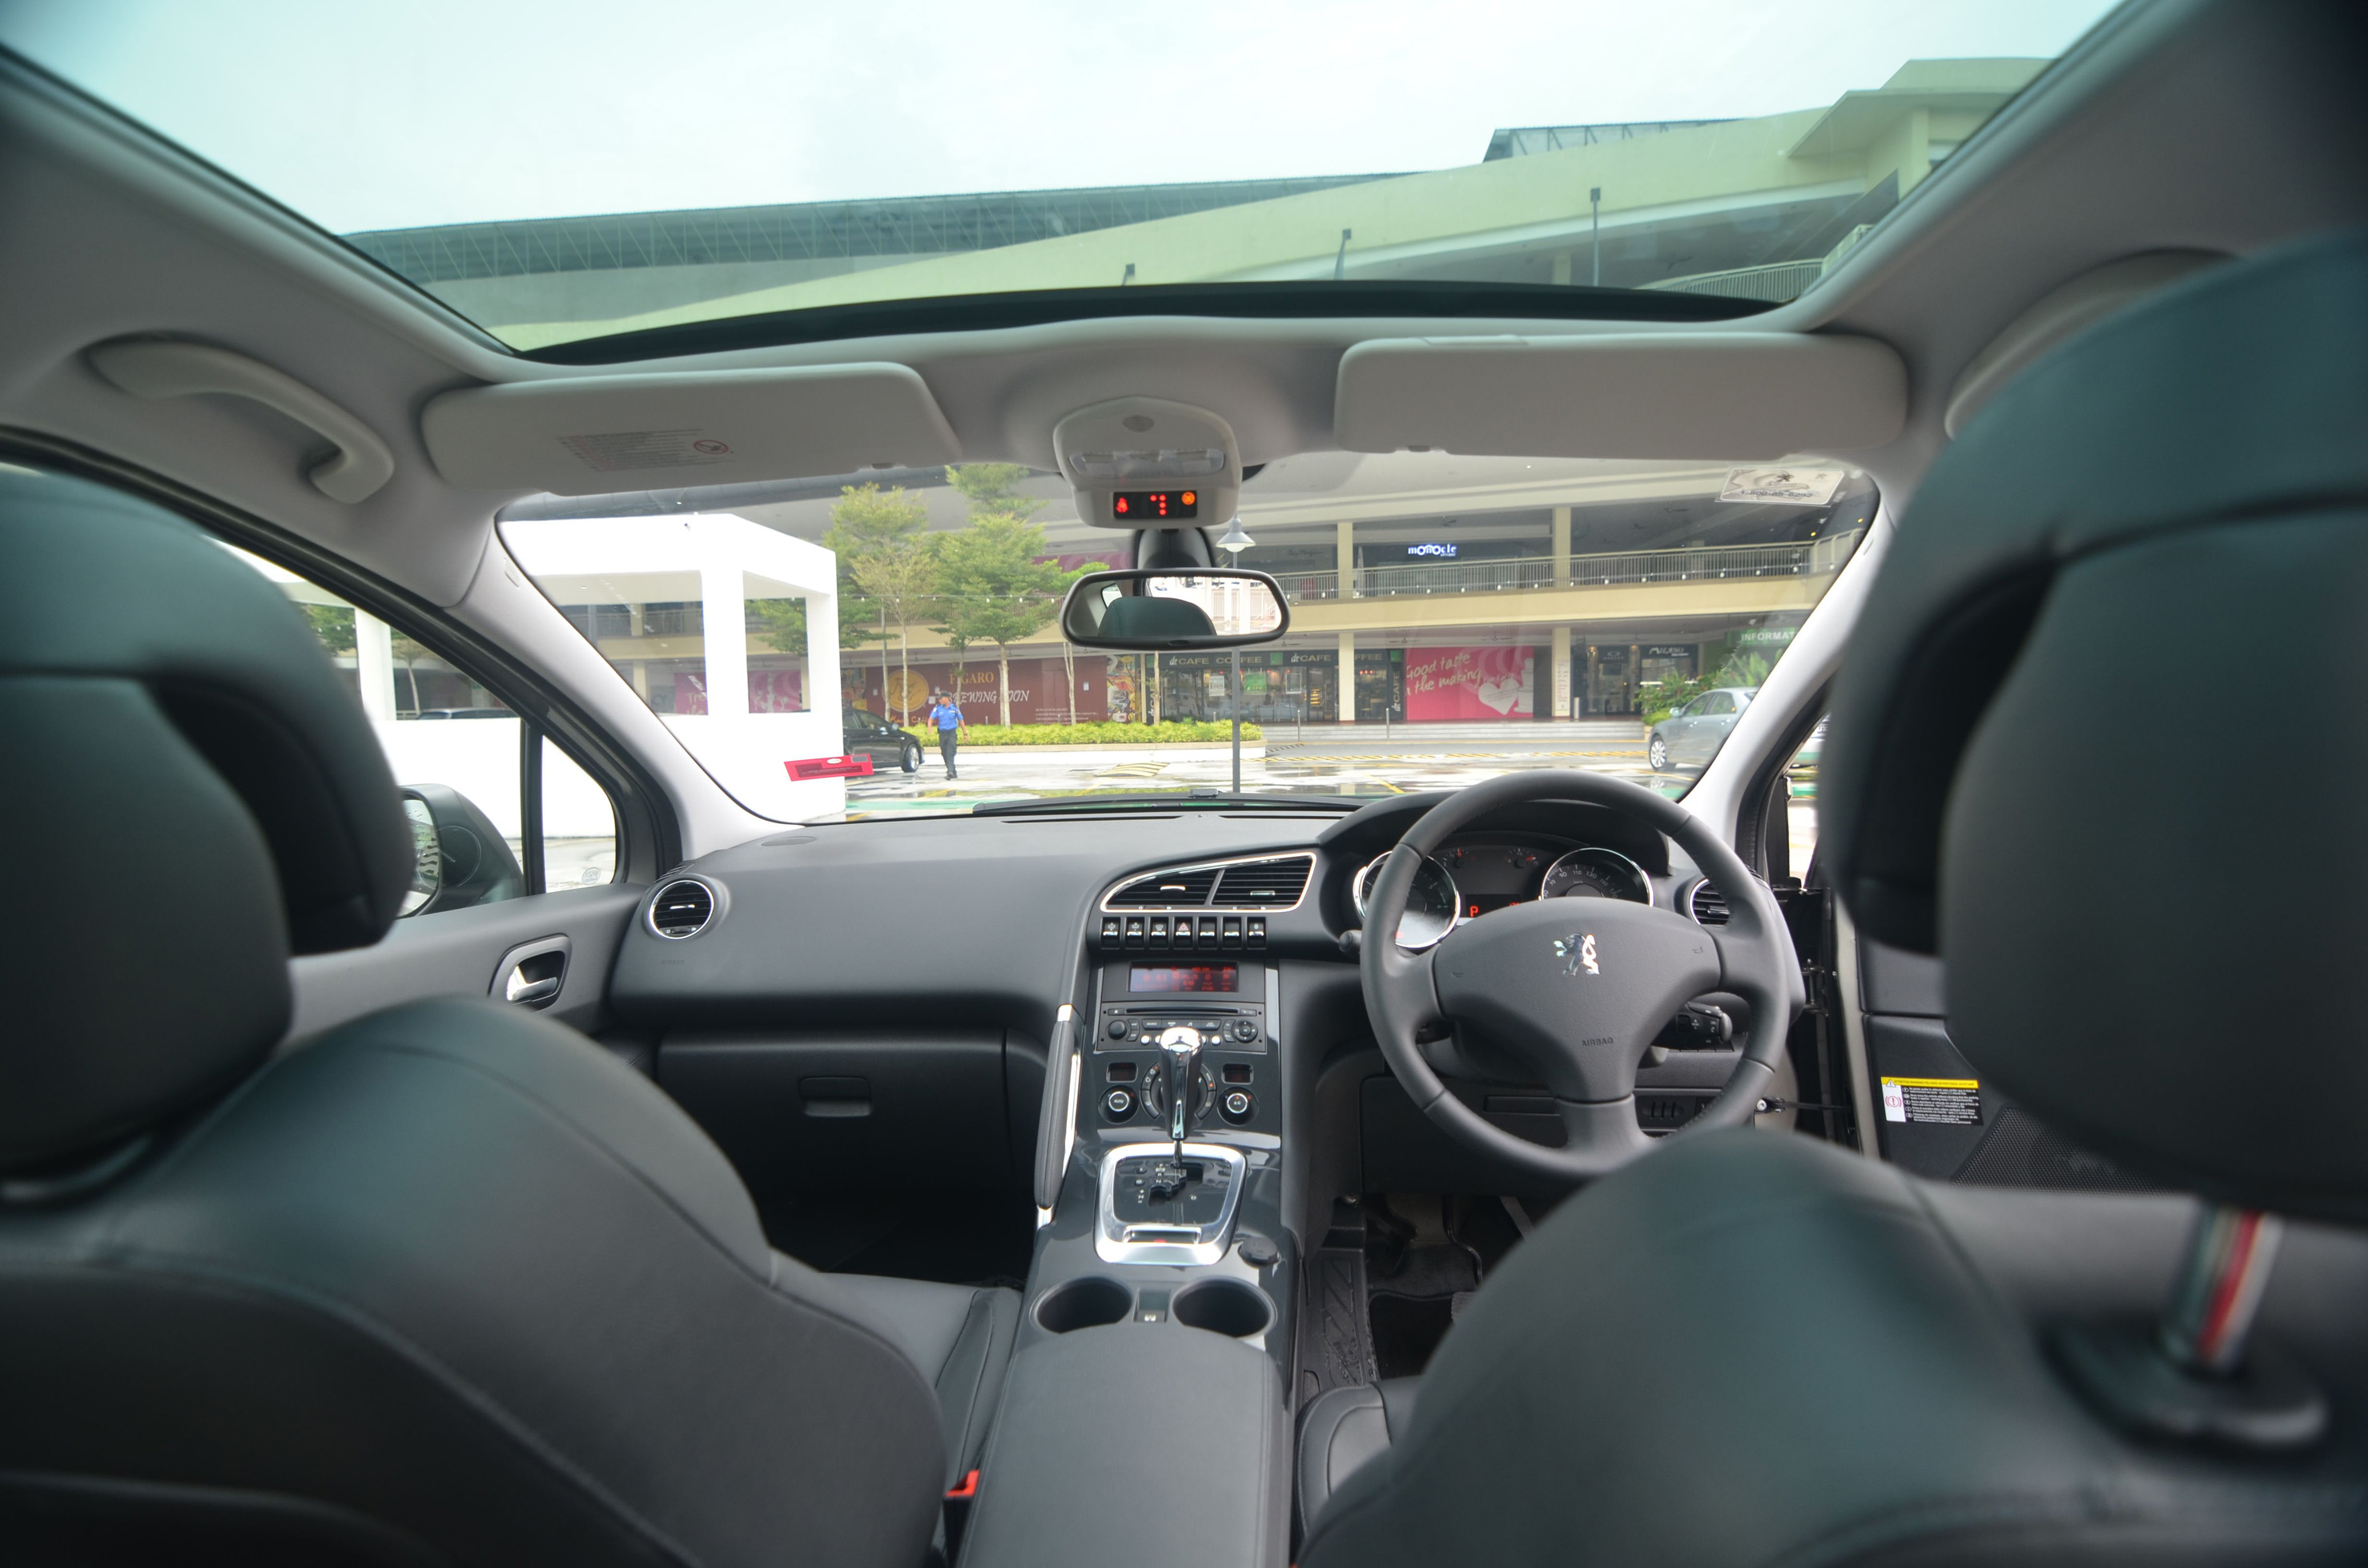 the peugeot 3008 - living life differently - kensomuse